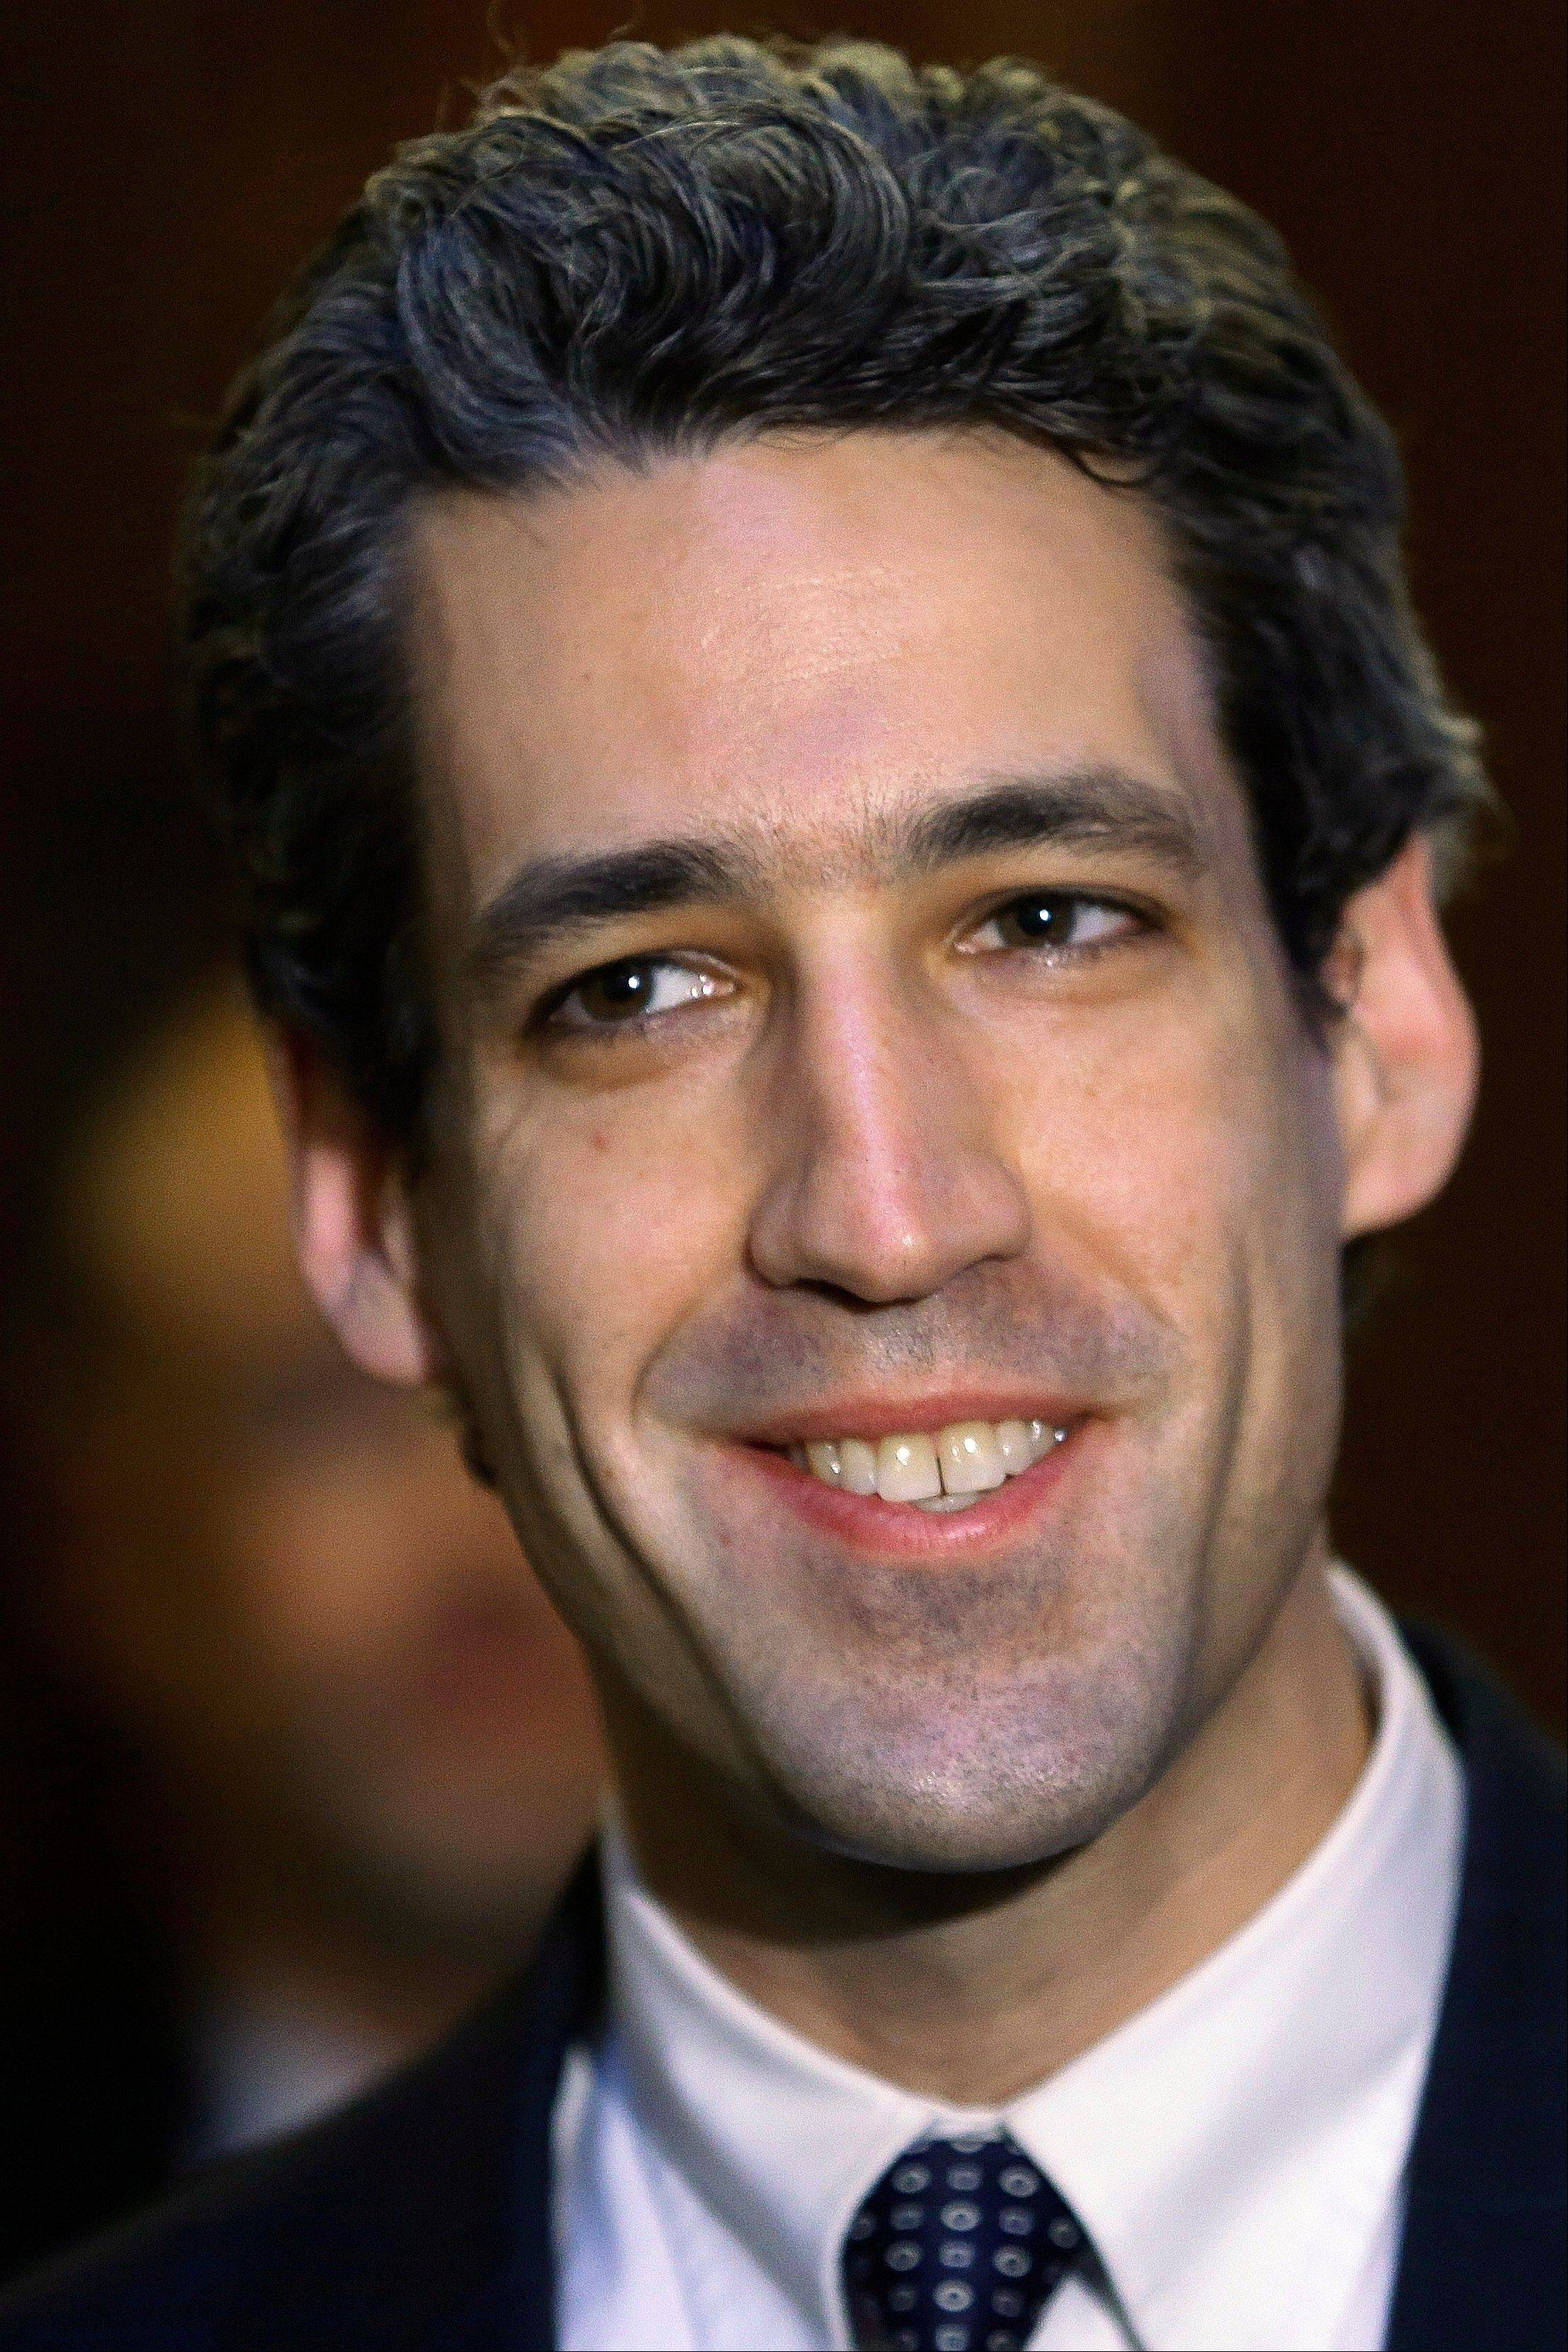 State Sen. Daniel Biss, an Evanston Democrat, speaks to reporters on pension legislation Wednesday in Springfield,